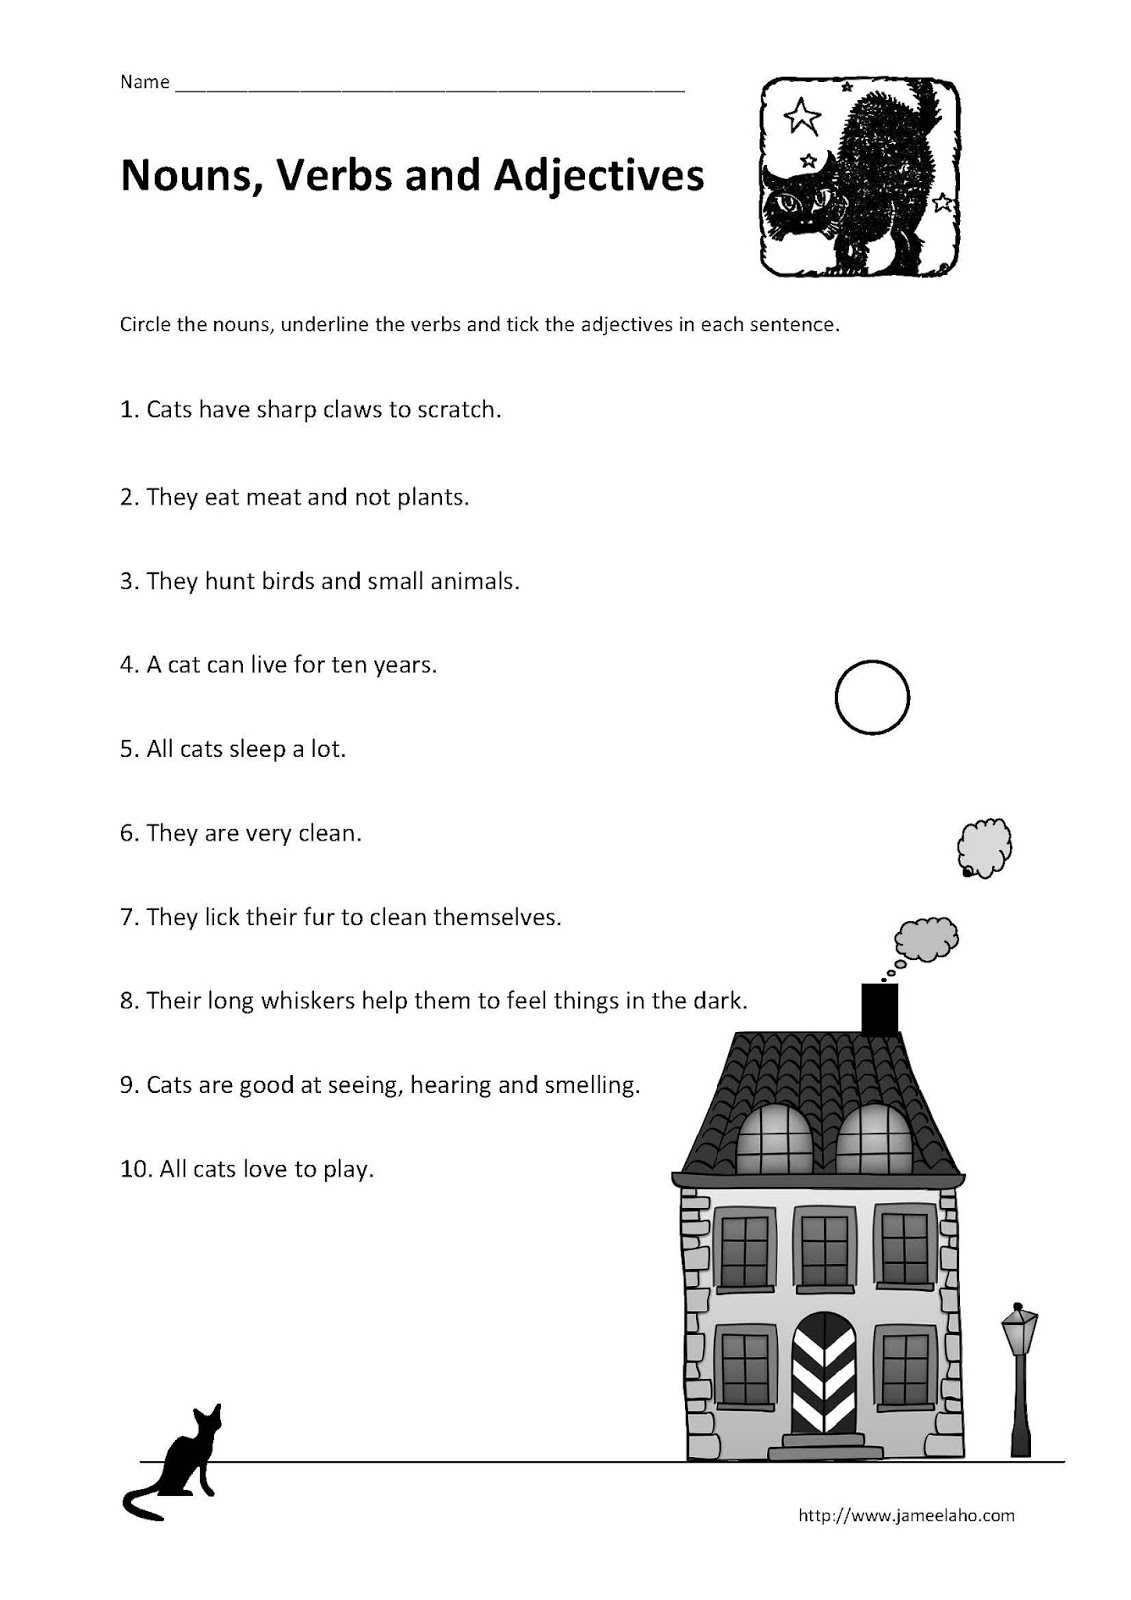 Identifying Nouns And Verbs Worksheets - Memarchoapraga